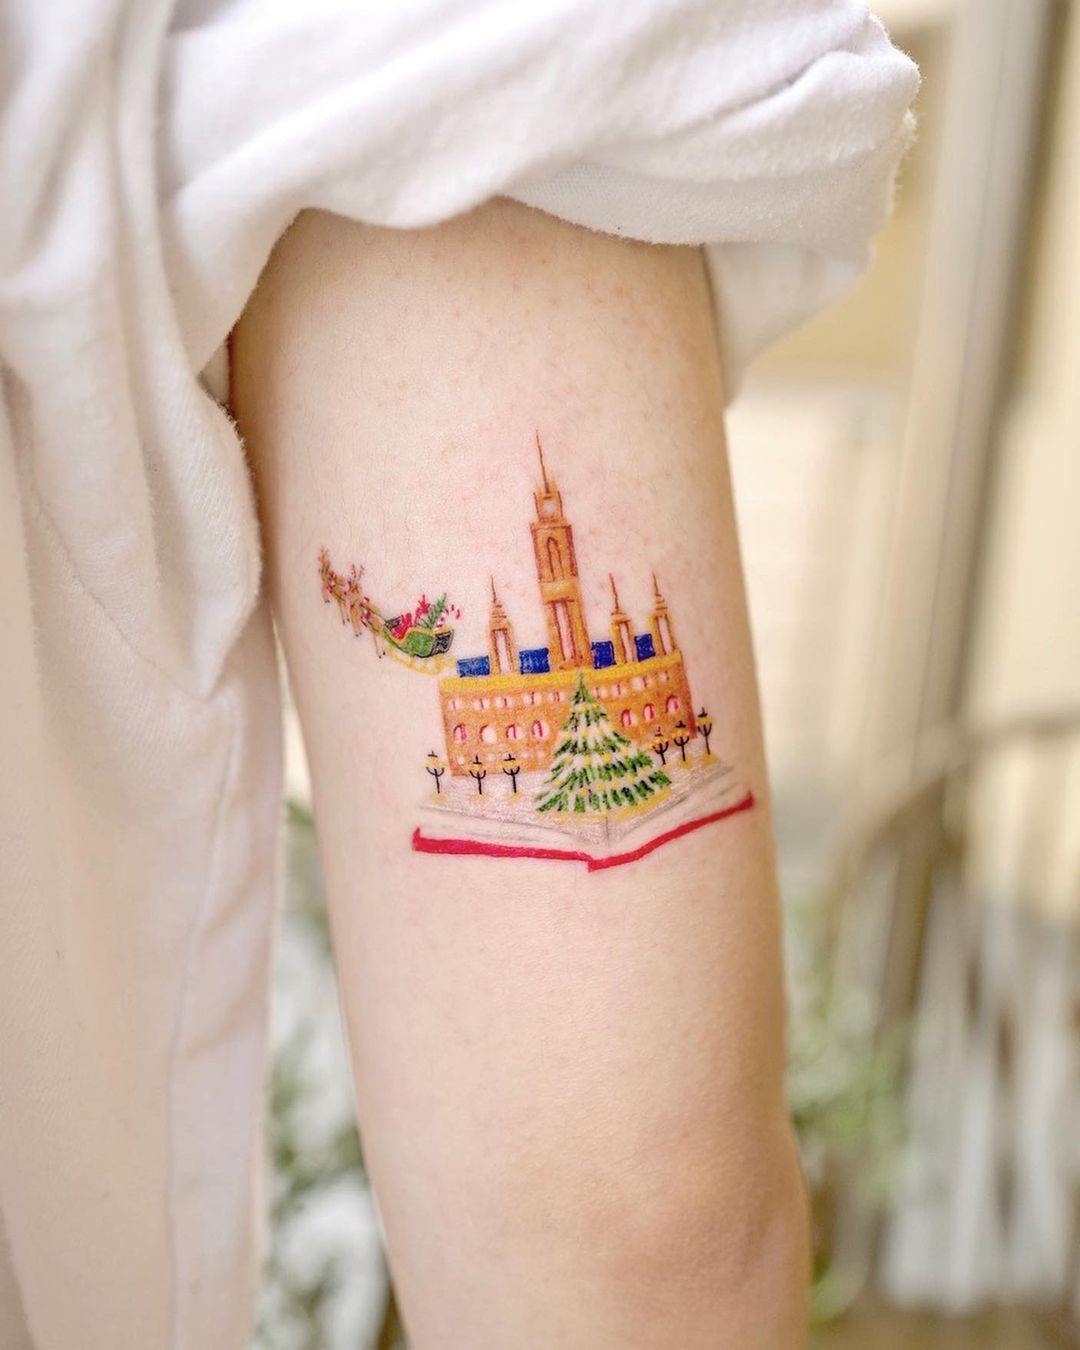 25 Christmas Tattoos That Bring the Jolly